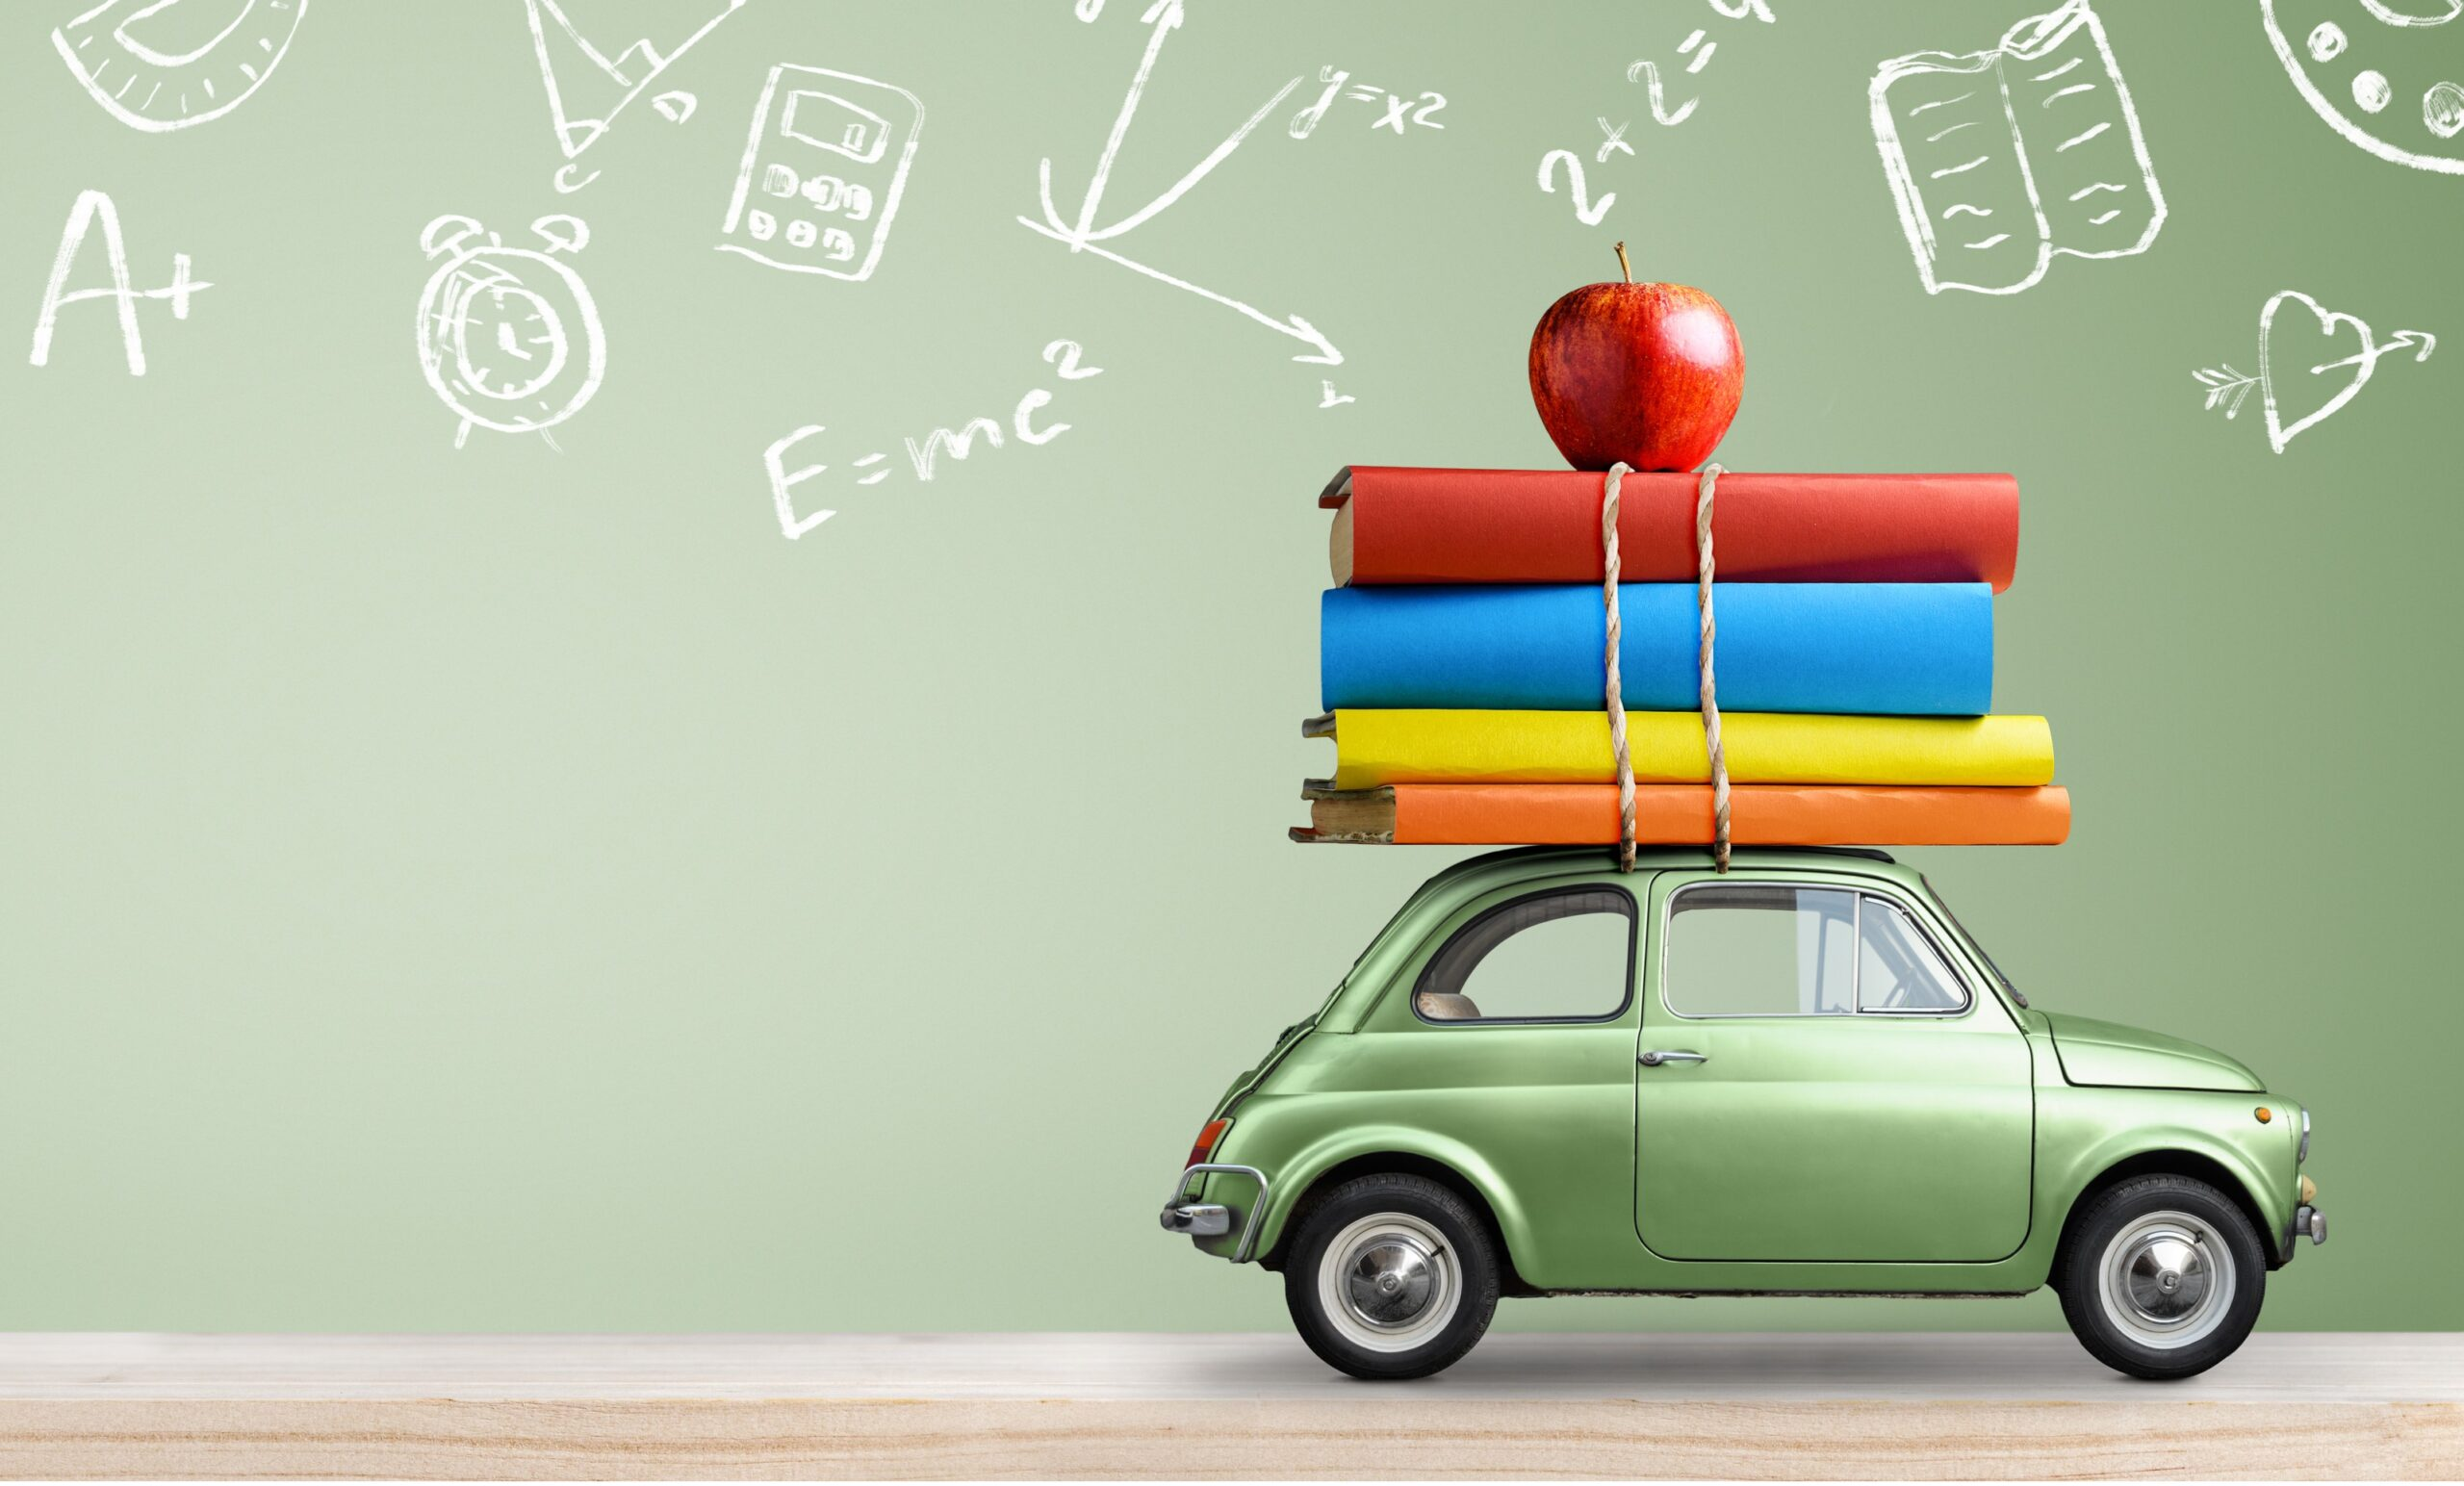 Mobile Education - bringing the teacher and classroom to the student